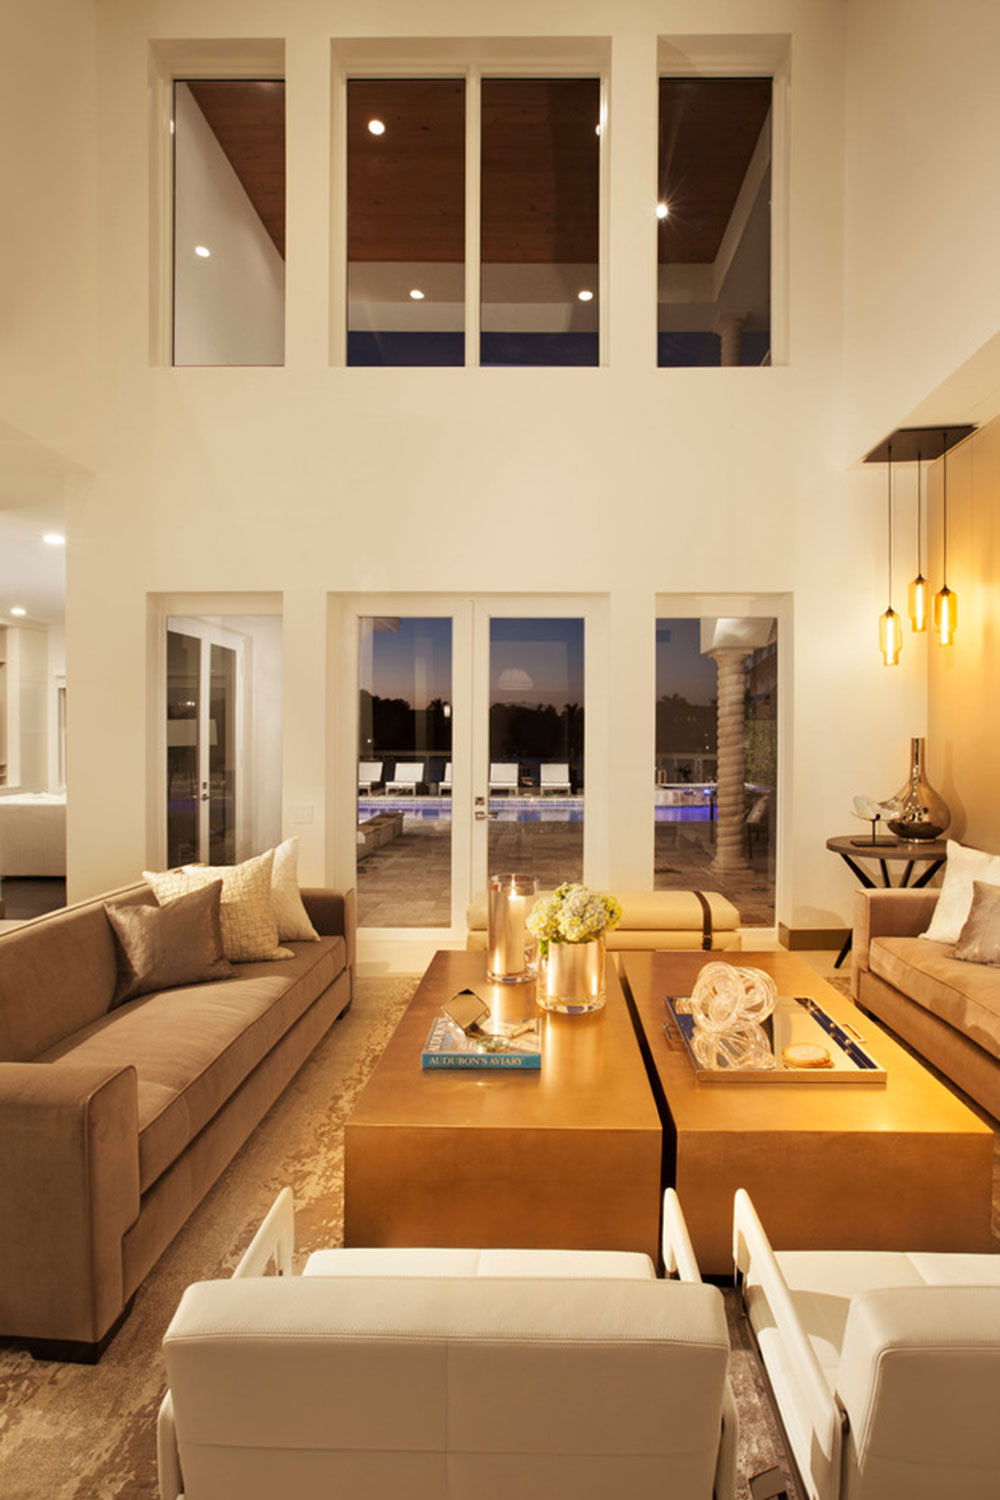 Interesting Tips for Creating a Welcoming Home10 Interesting Tips for Creating a Welcoming Home